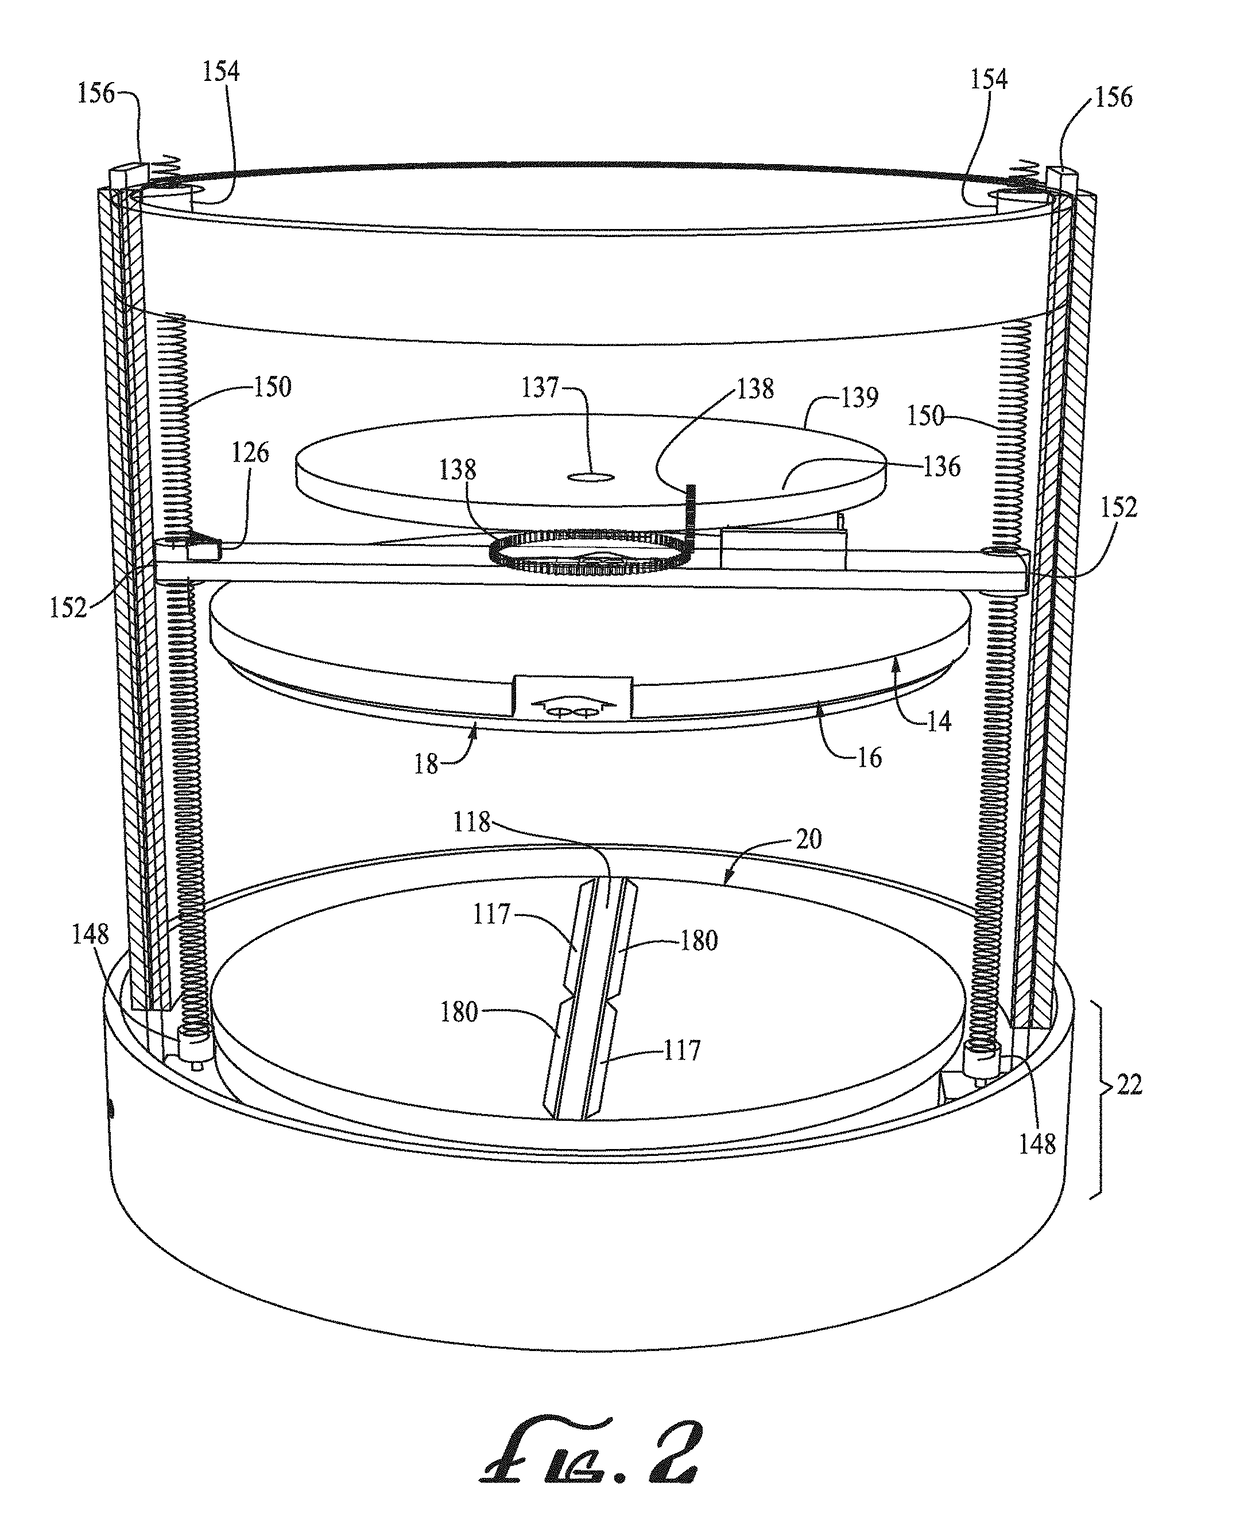 Patent Report: | US20180215092A1 | 3D Printing Using Rotational